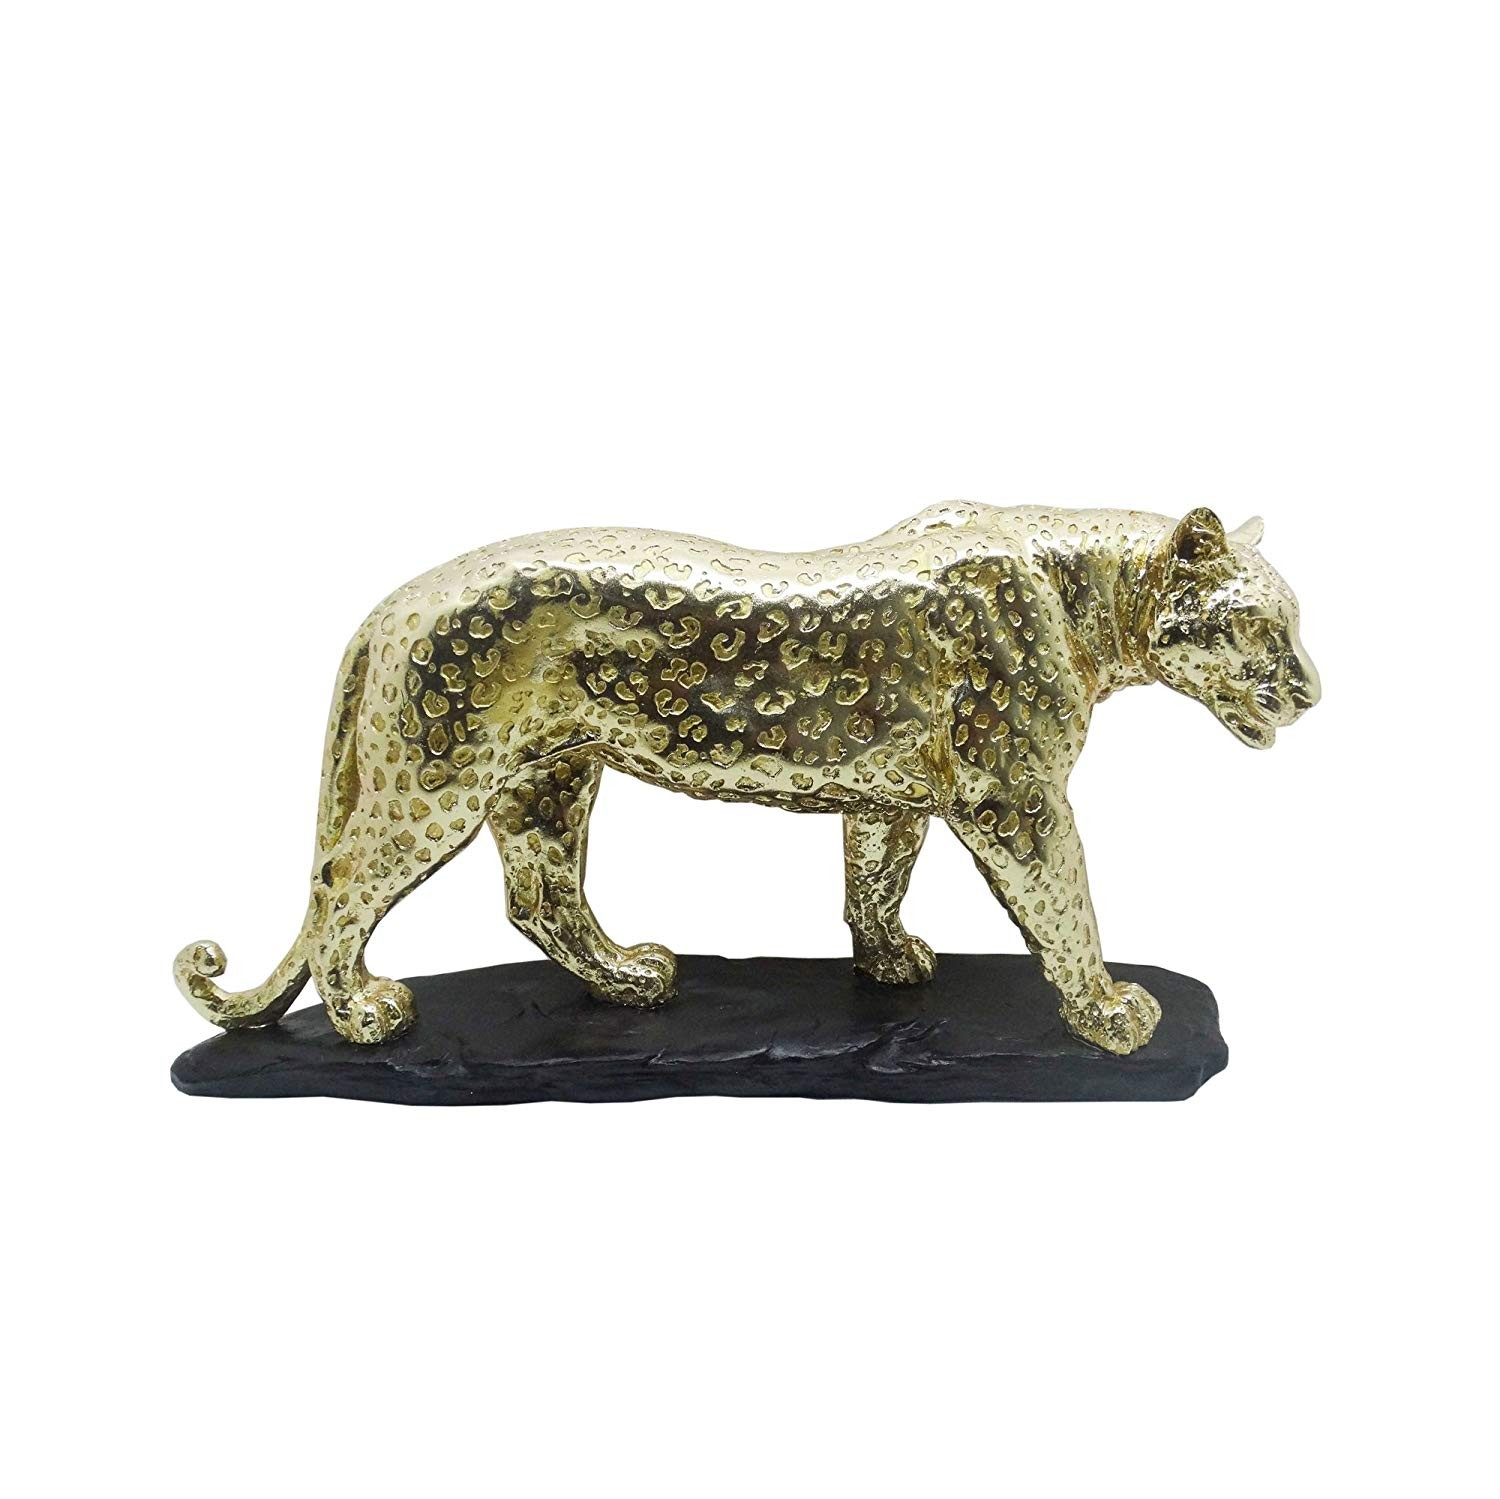 American Atelier Leopard Figurine, Gold with Black Base